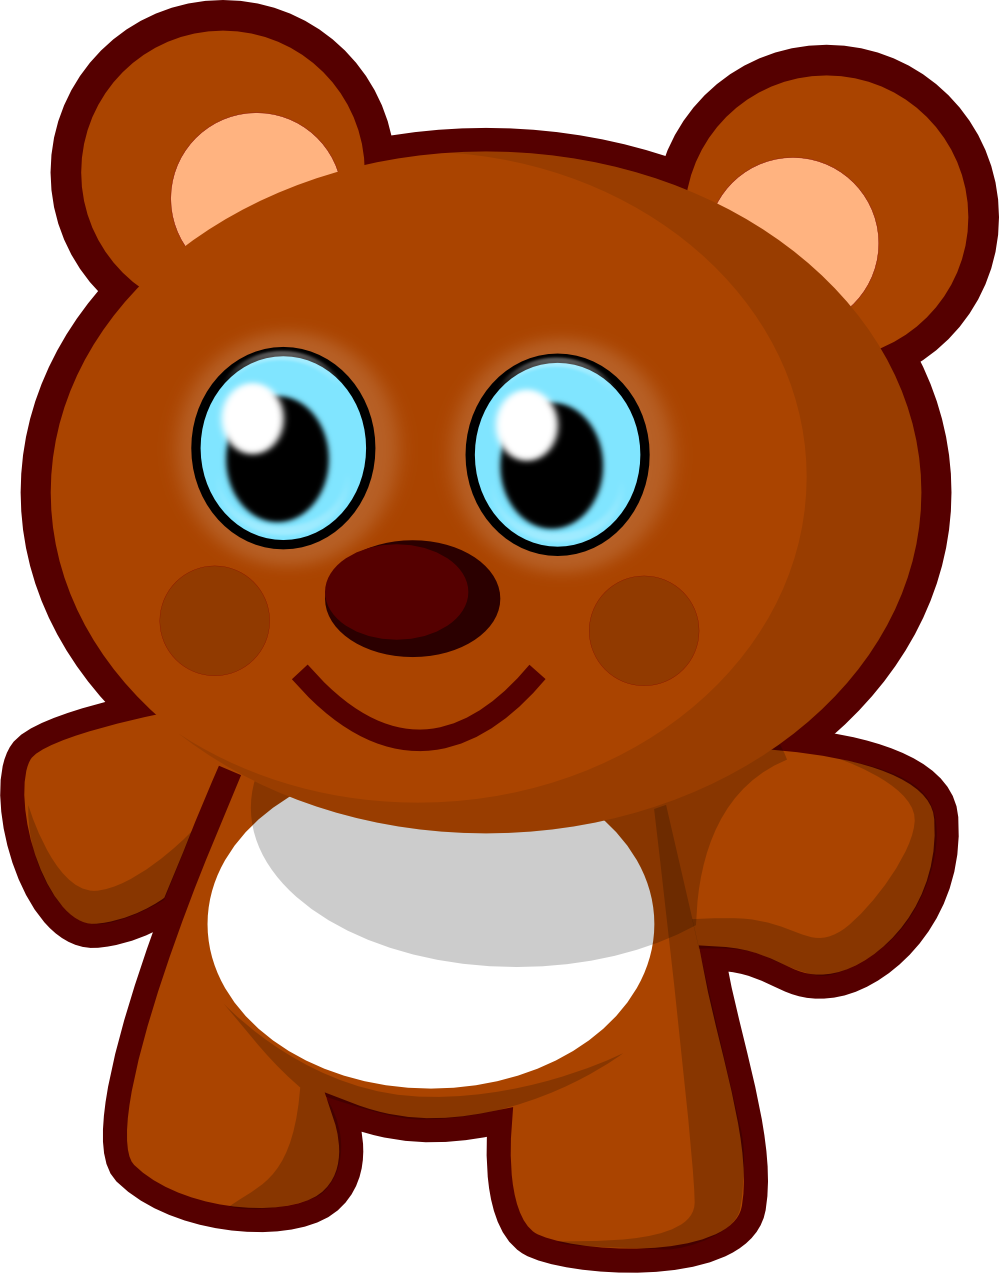 Bear clipart png 2 » Clipart Station.